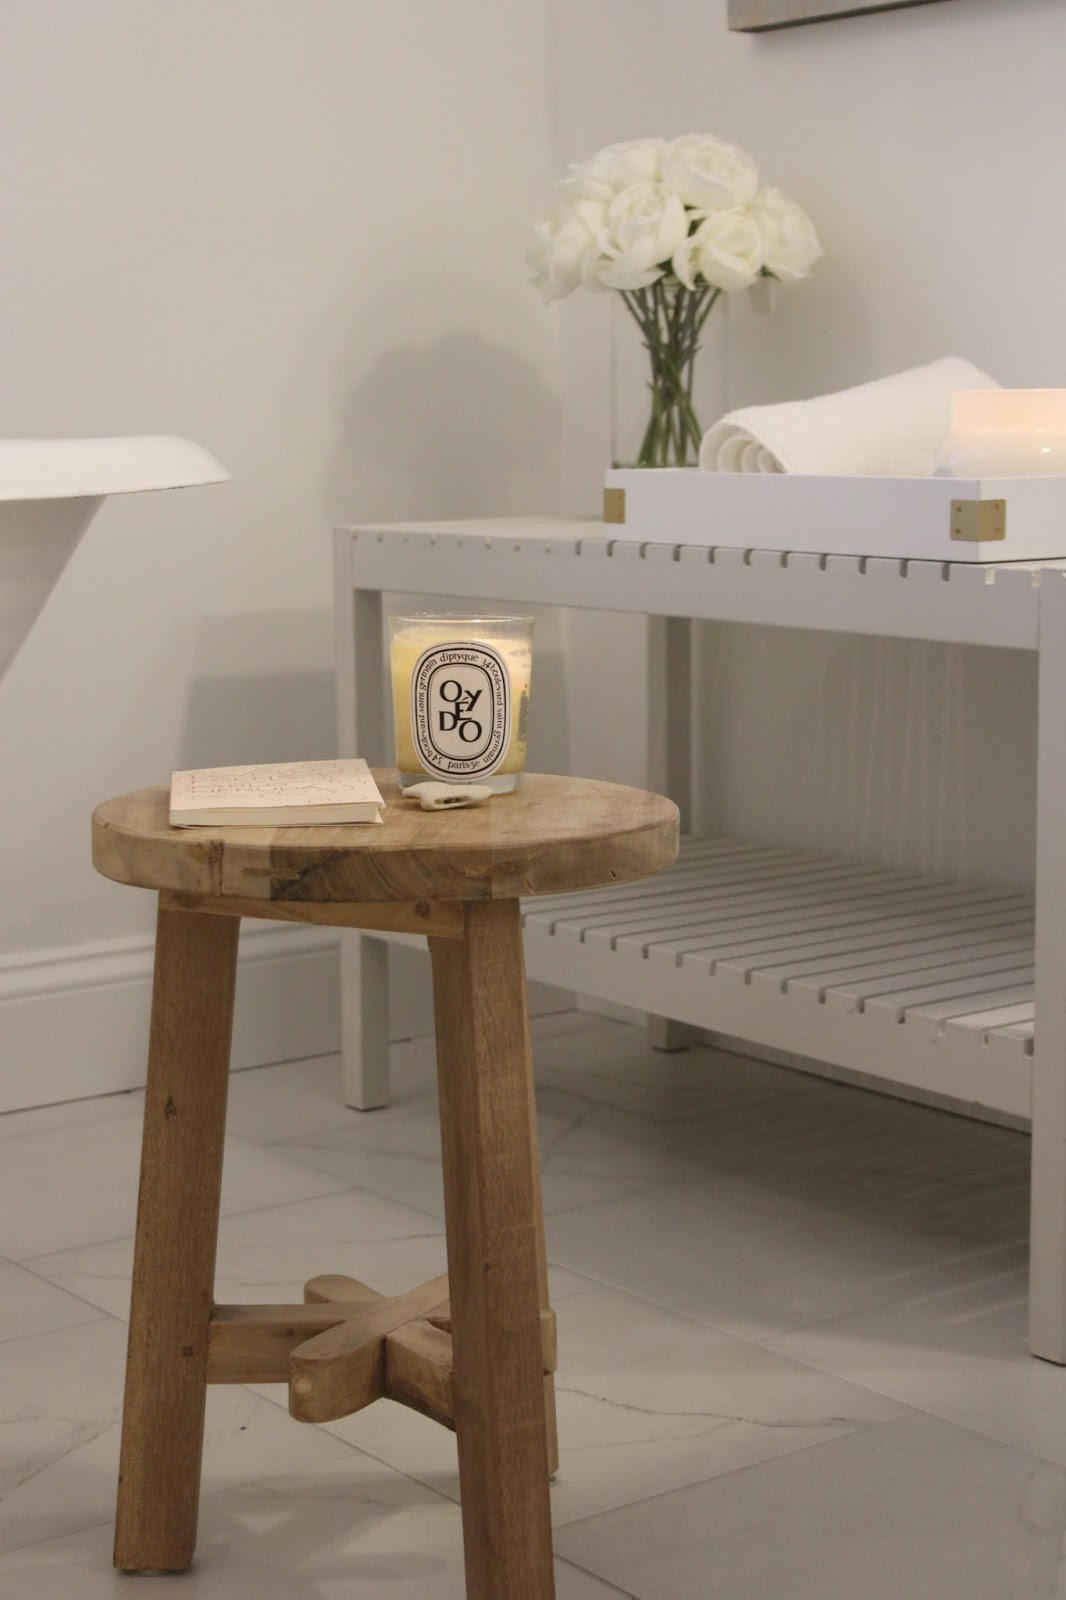 A 3-legged stool in my bathroom near the clawfoot tub has a Diptyque candle and a book of poetry. White roses in the background. #bathroomdecor #hellolovelystudio #rusticstool #diptyque